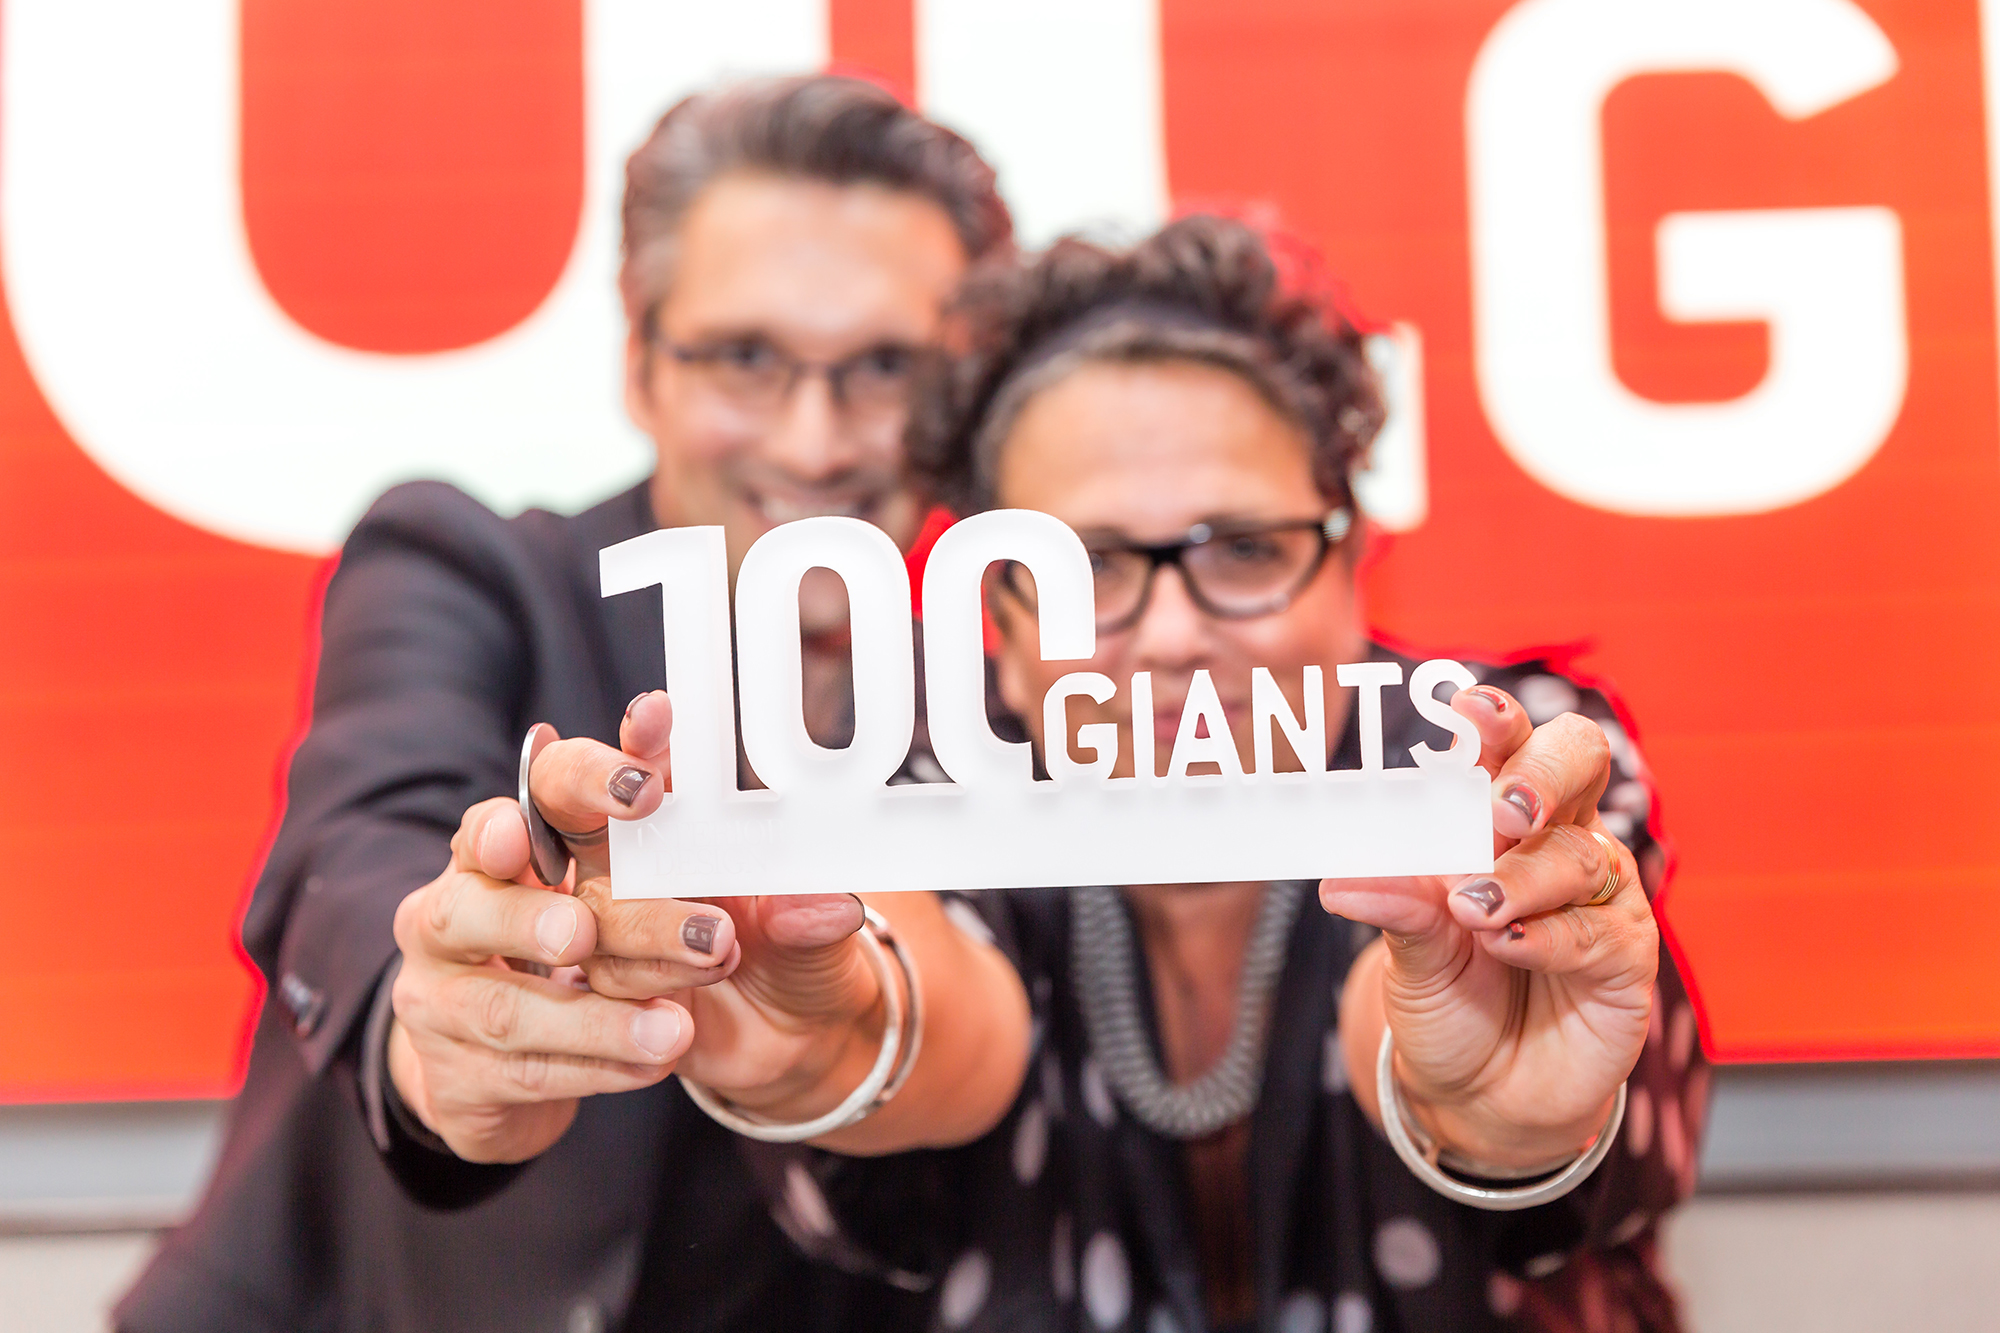 Interior Design Celebrates 40 Years Of Giants With Summer Luncheon